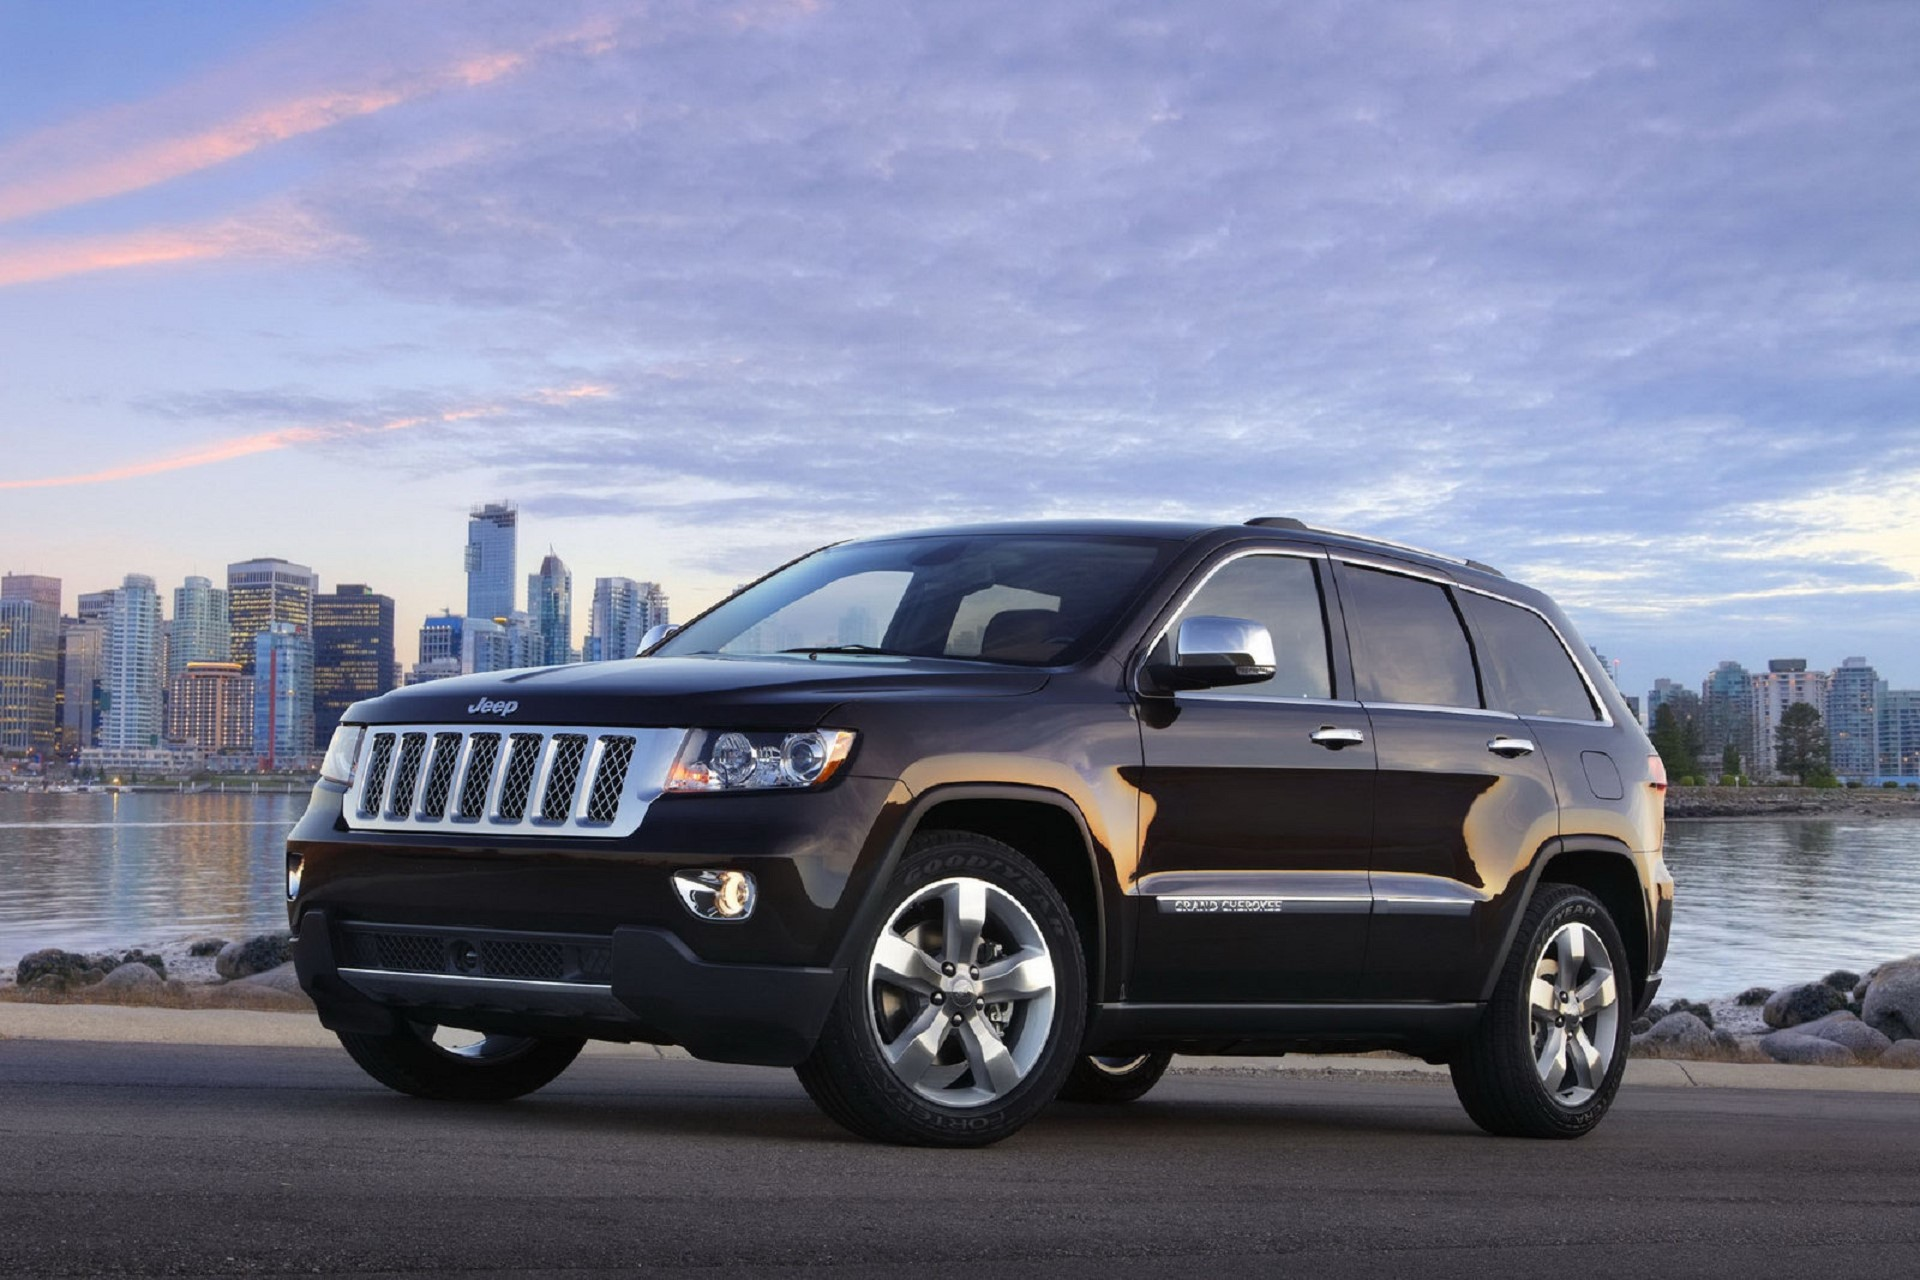 Jeep images